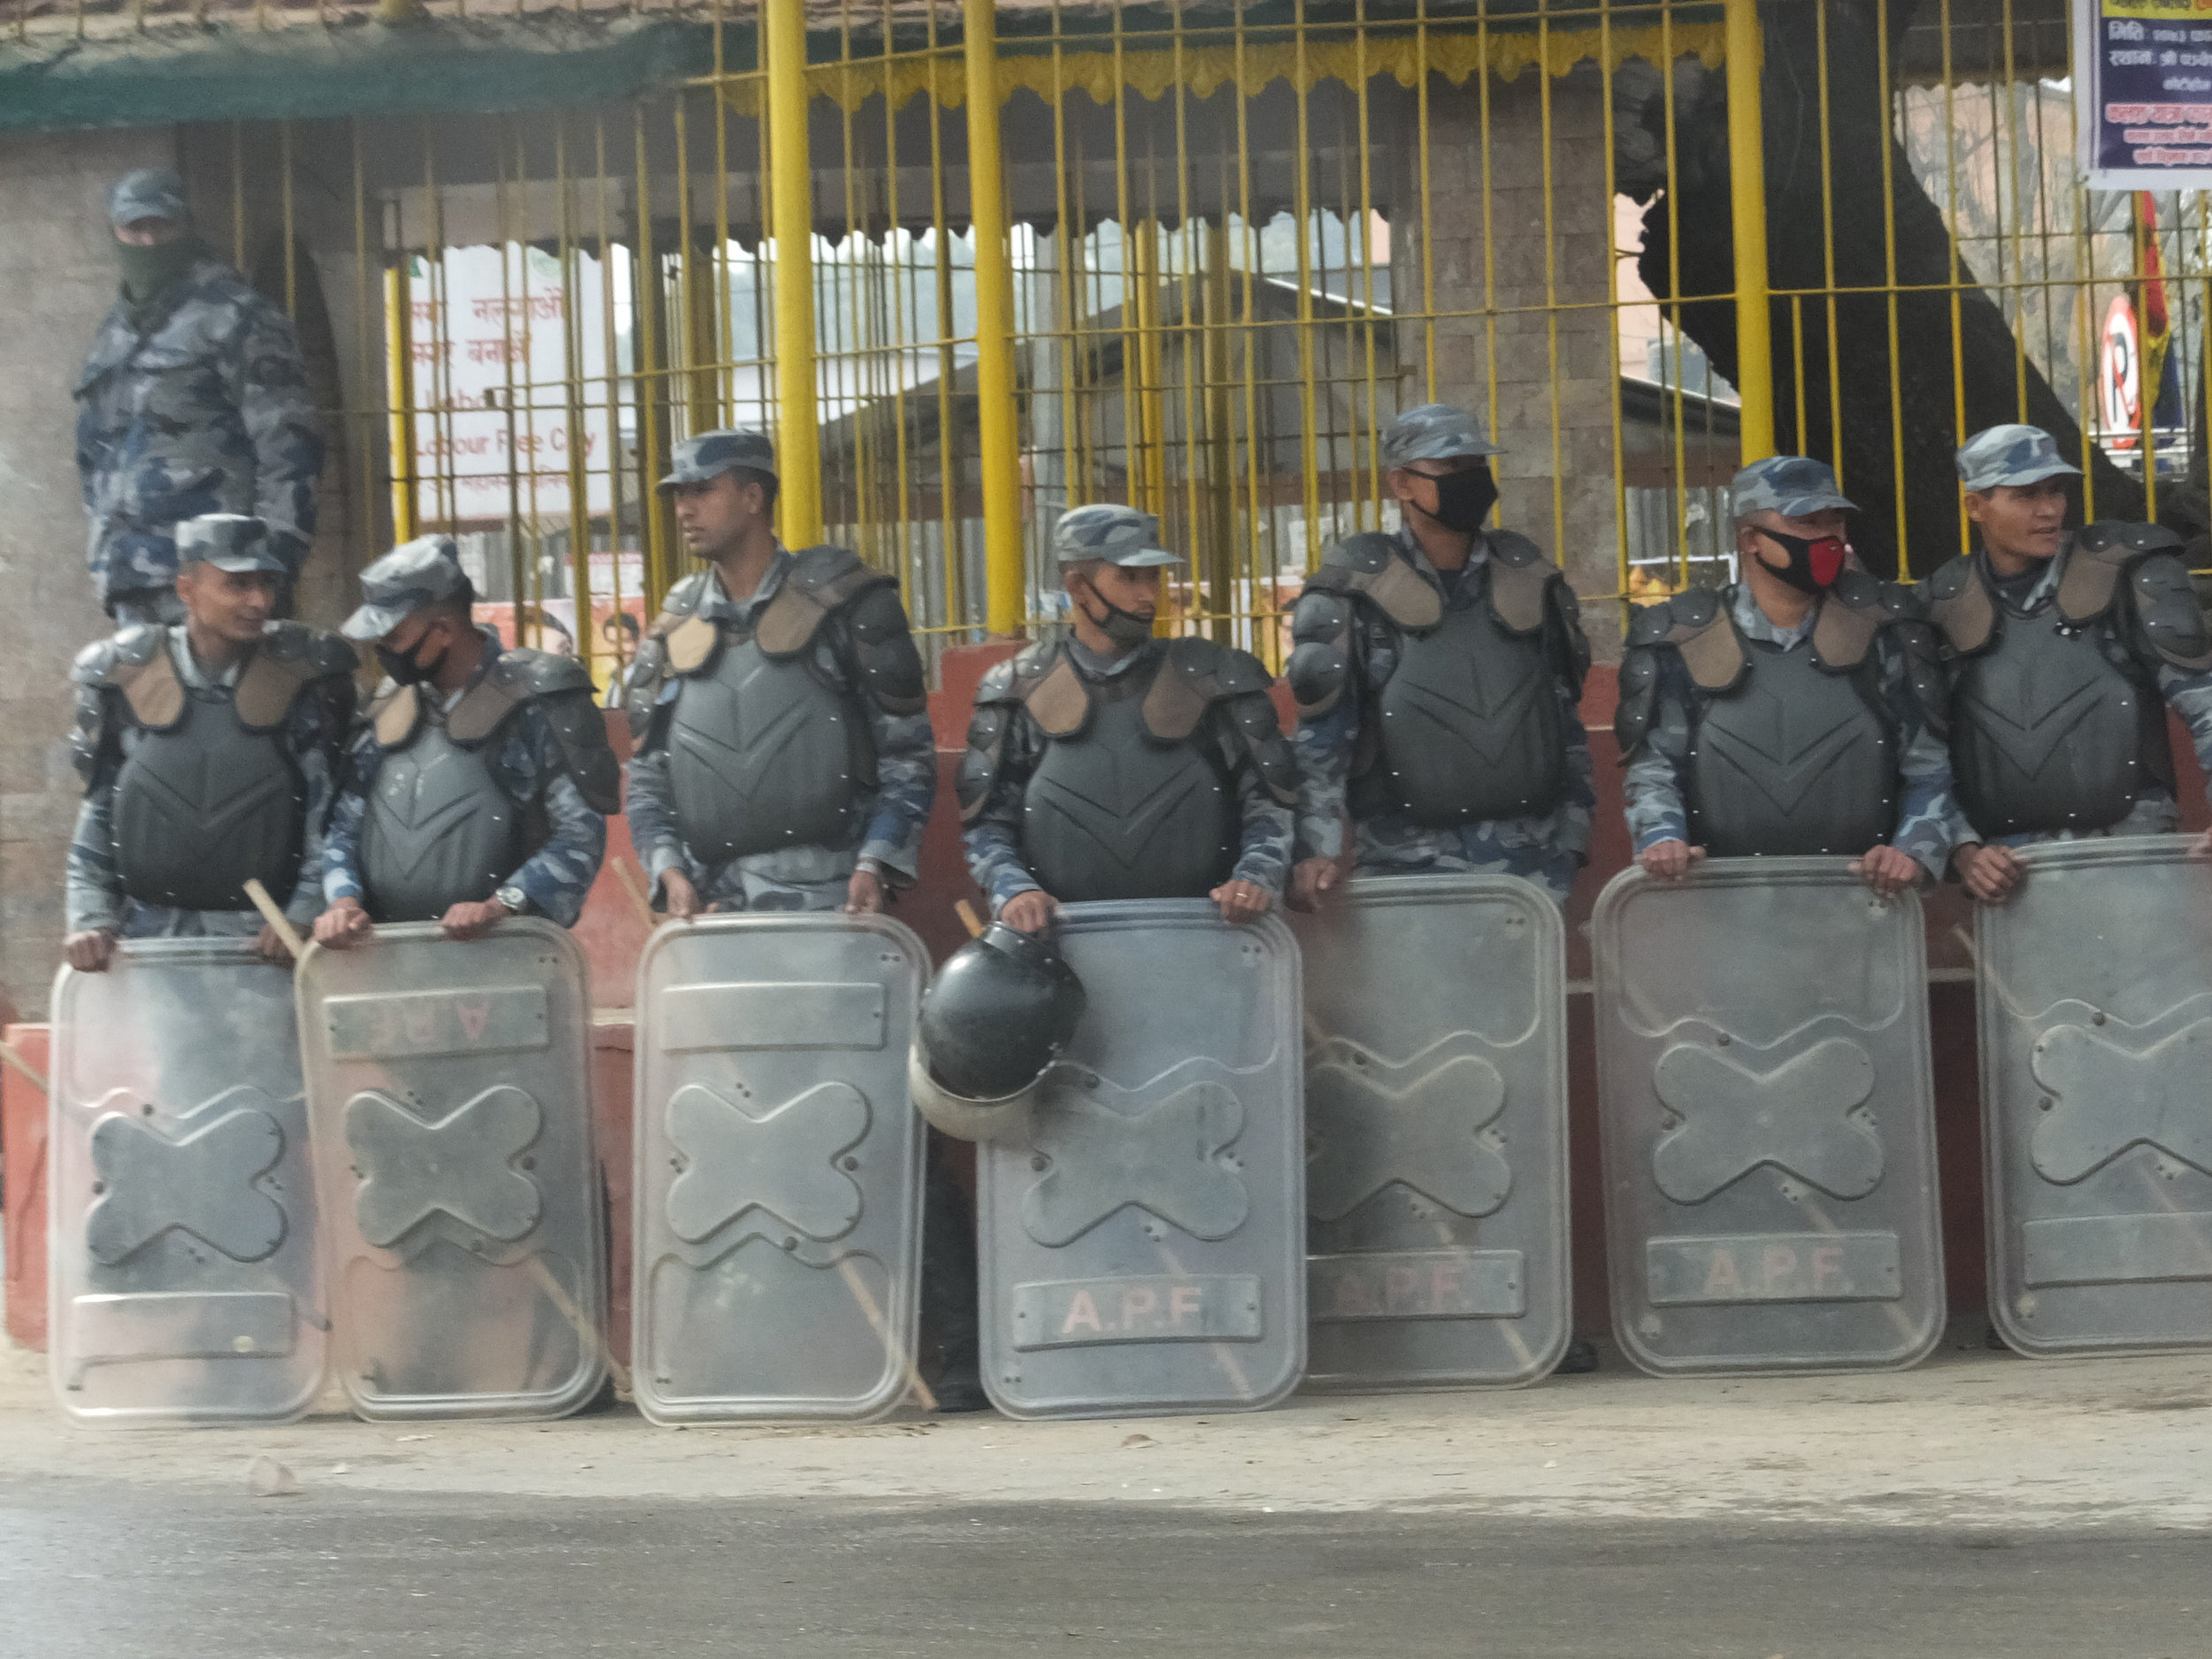 Frequent demonstrations bring police in riot gear.